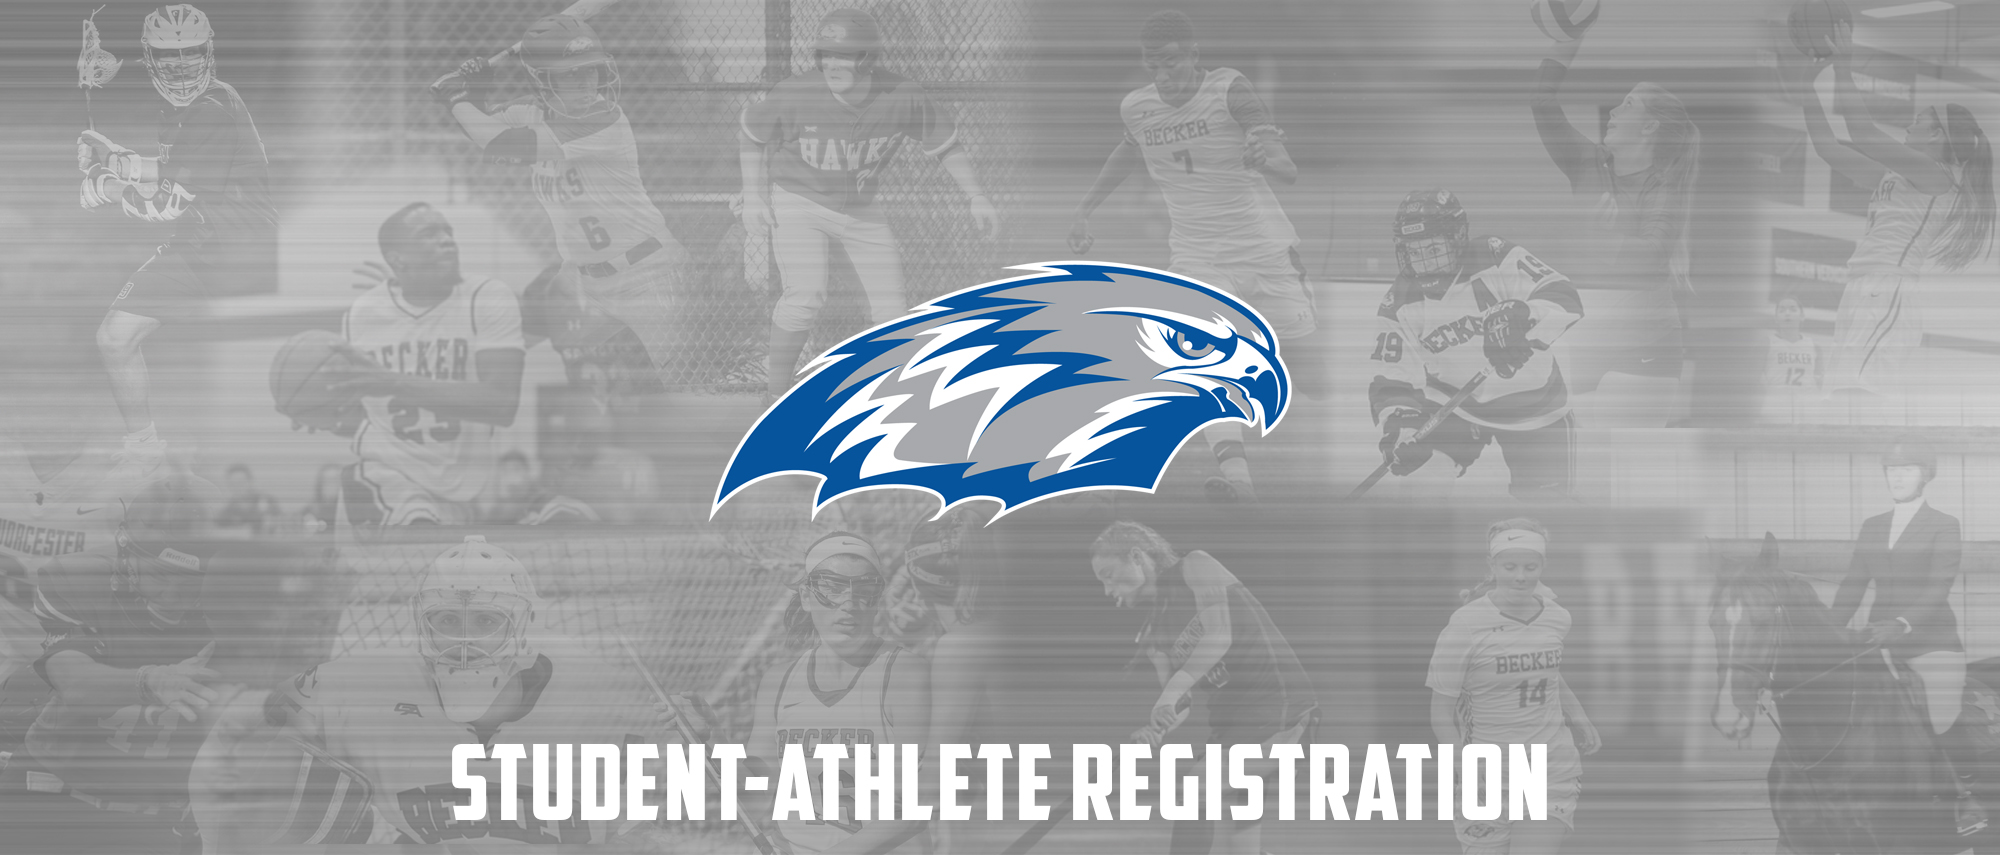 Student-Athlete Registration